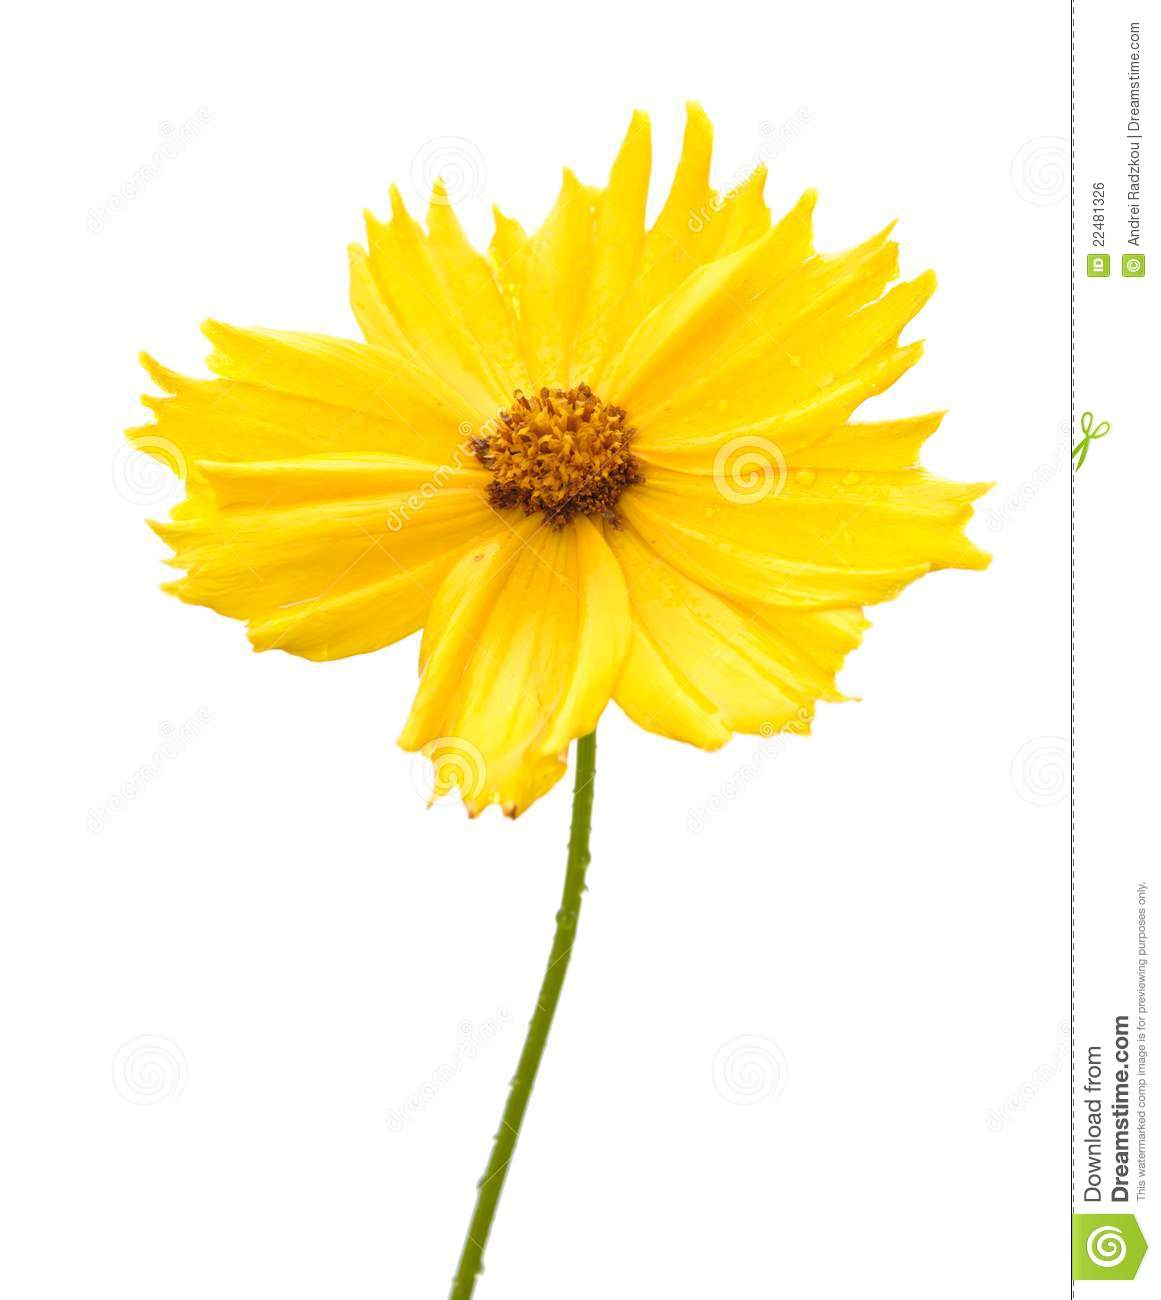 Coreopsis clipart #4, Download drawings